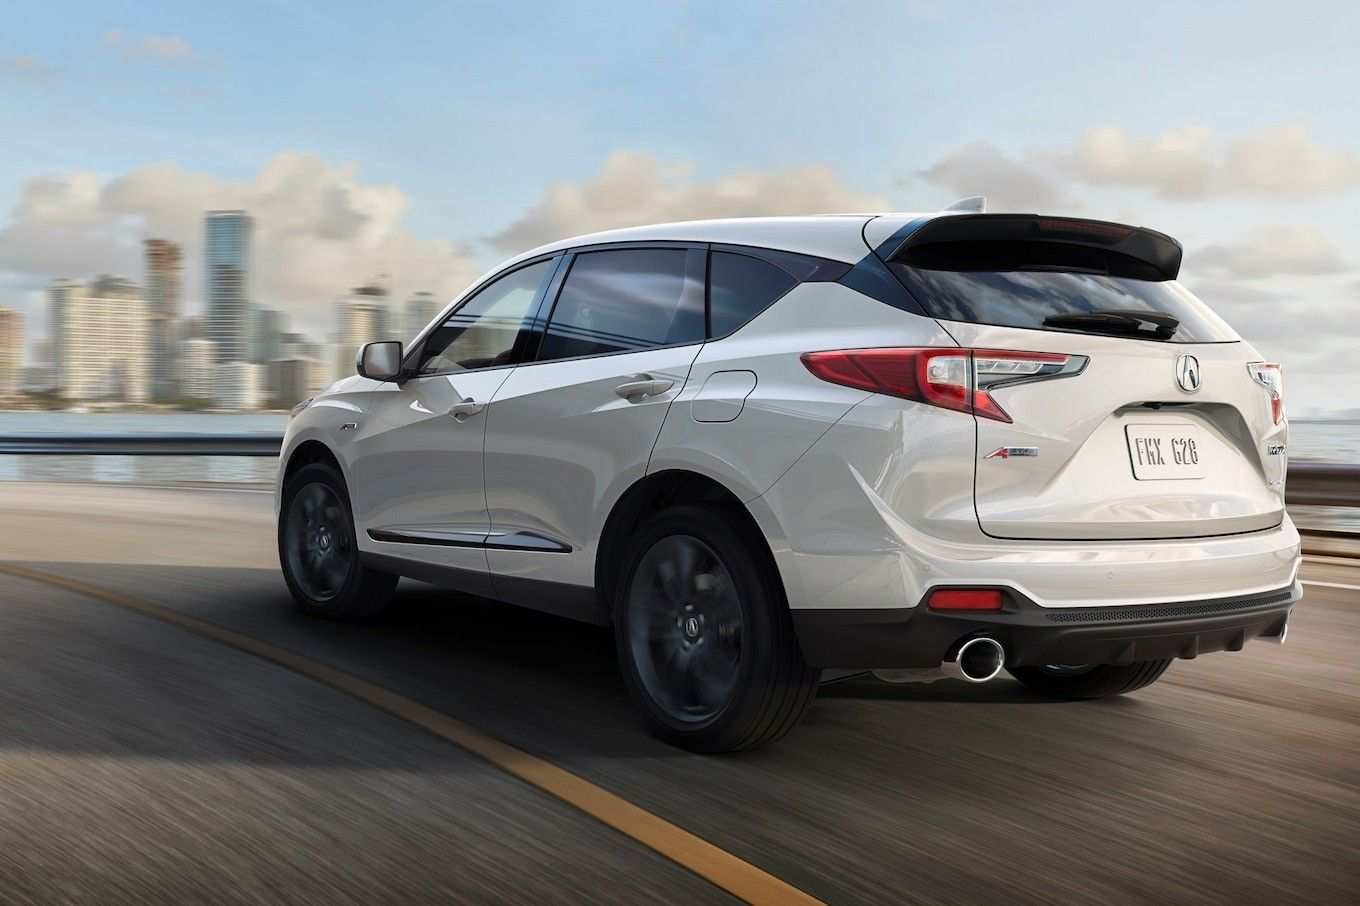 92 The New Acura Rdx 2019 First Drive Release Date And Specs Performance by New Acura Rdx 2019 First Drive Release Date And Specs